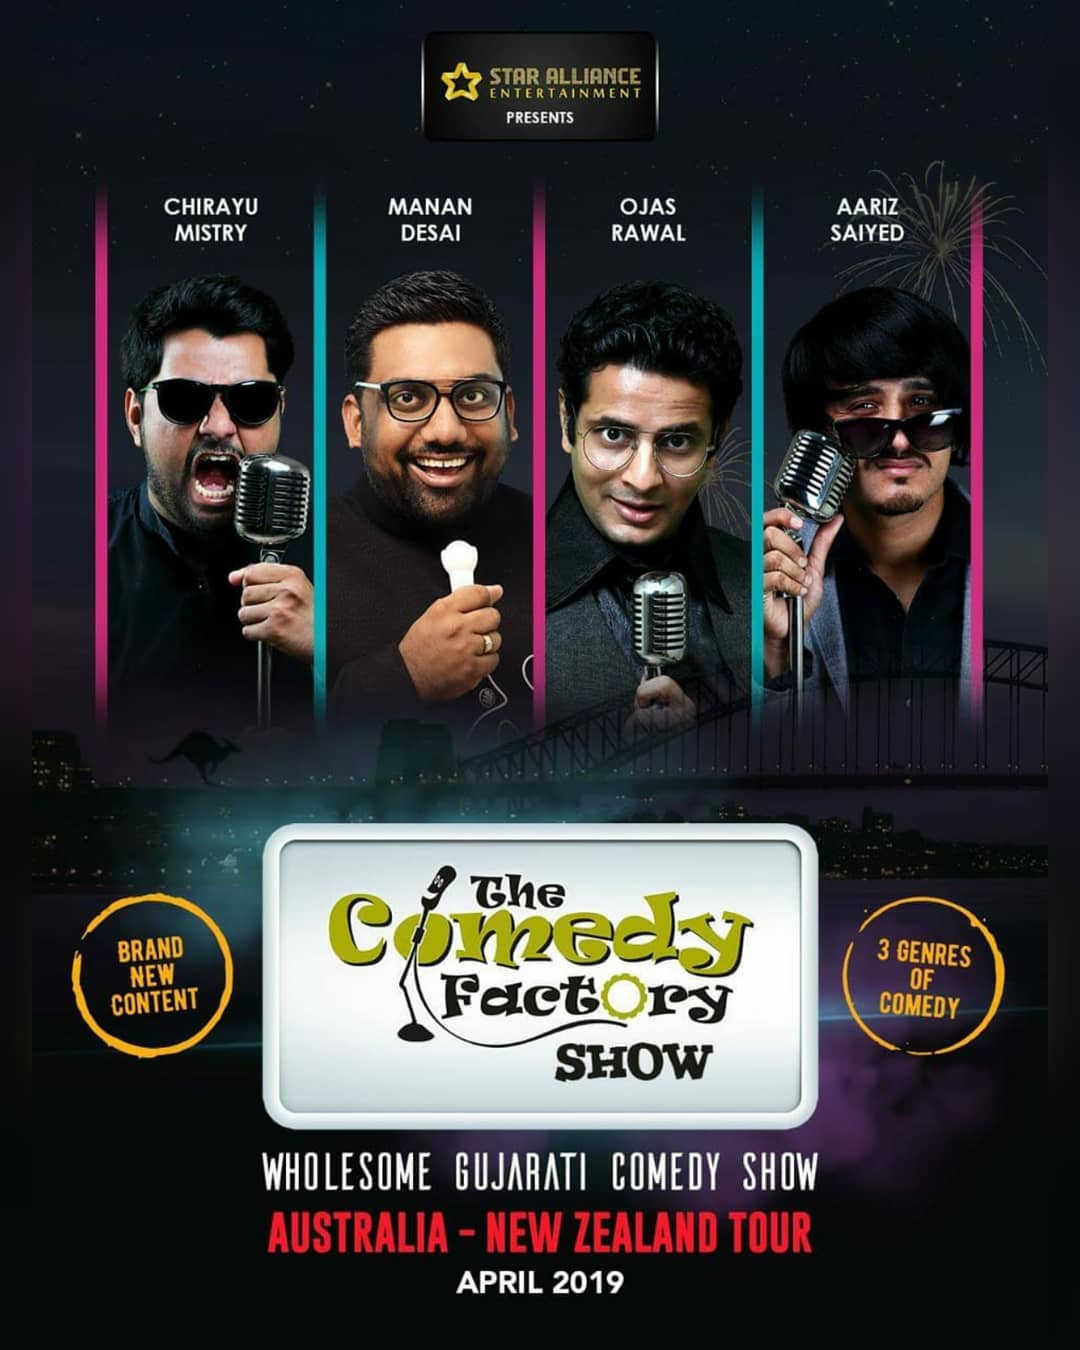 *ANNOUNCEMENT* @thecomedyfactoryindia is coming to Australia, New Zealand and USA with a whole new show. 2019 ko rock karr daalenge.  To sponsor or promote or organize or book our show for you city then contact @bablu21 of Star Alliance Entertainment for Australia and New Zealand.  And contact @amitdpathak from Be United and Meetul Patel from Dream Merchantz for USA.  Aavjo!!! #thecomedyfactory #australia #newzealand #usa #gujarati #comedy